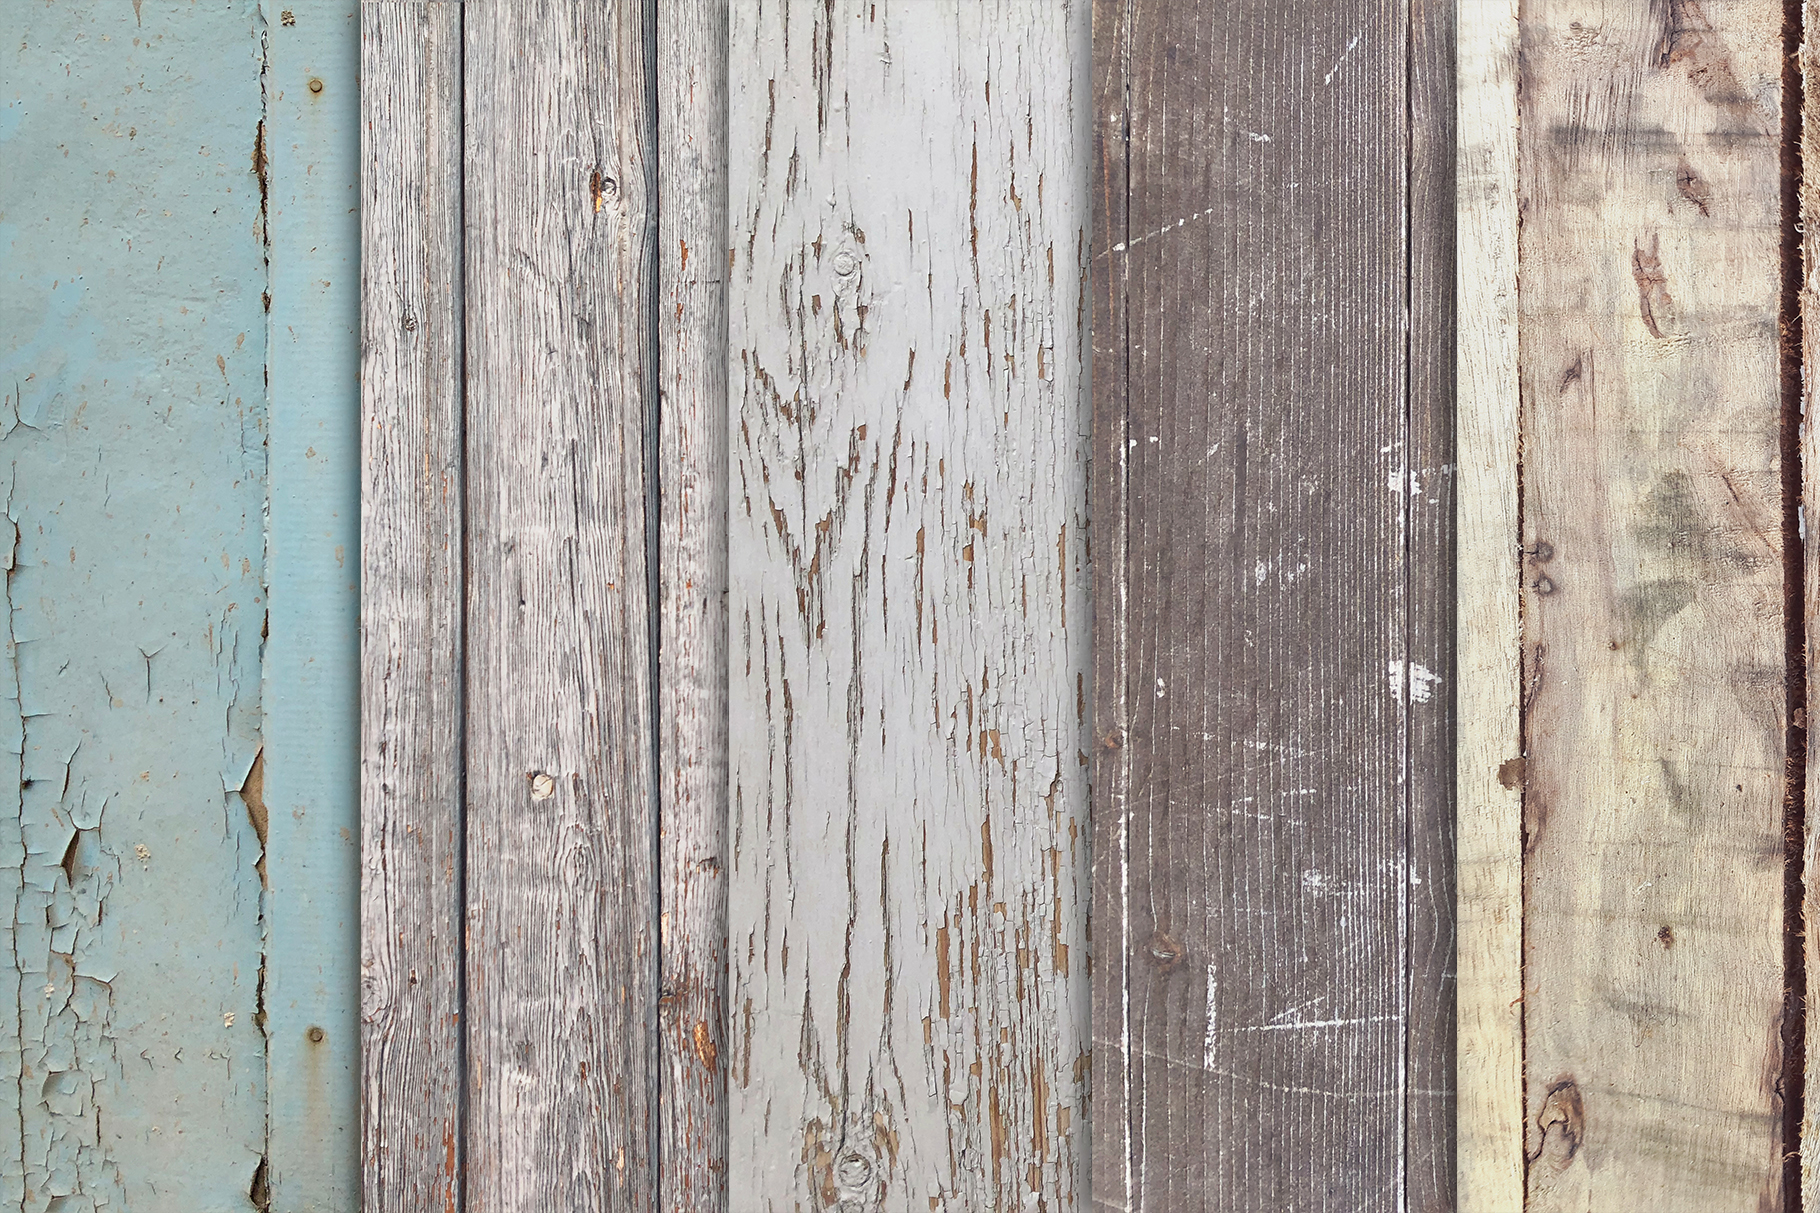 Old Wood Textures x10 vol2 example image 3